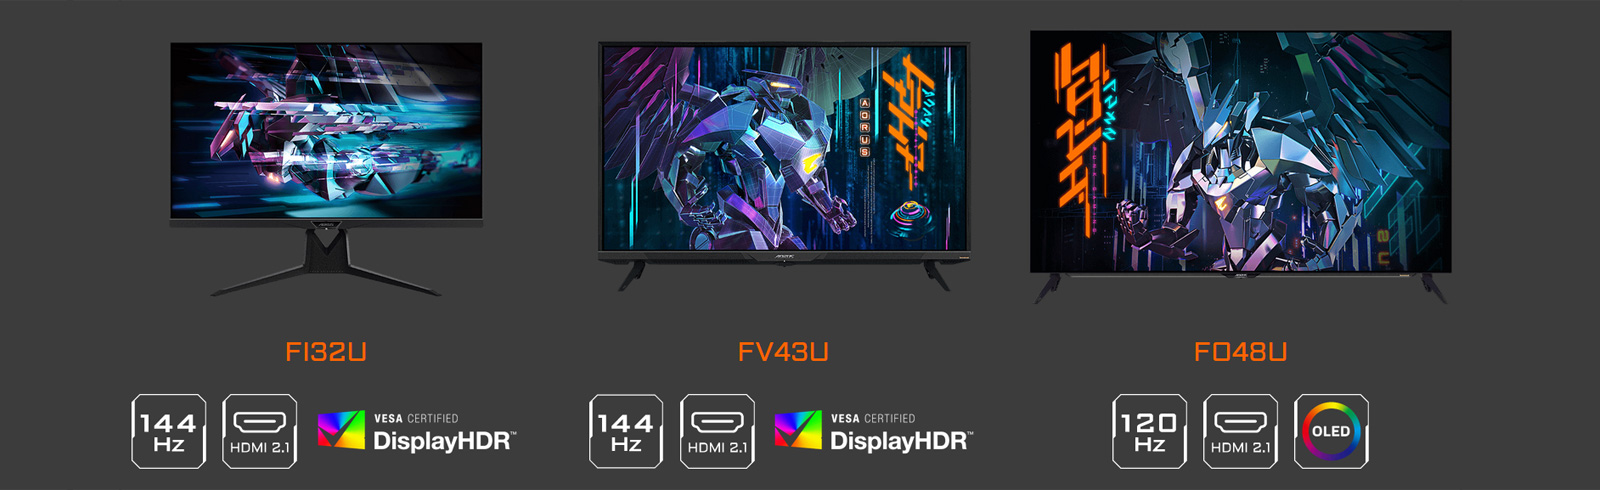 Gigabyte FI32U, FV43U, and FO48U AORUS 4K monitors are fully suited for console gaming